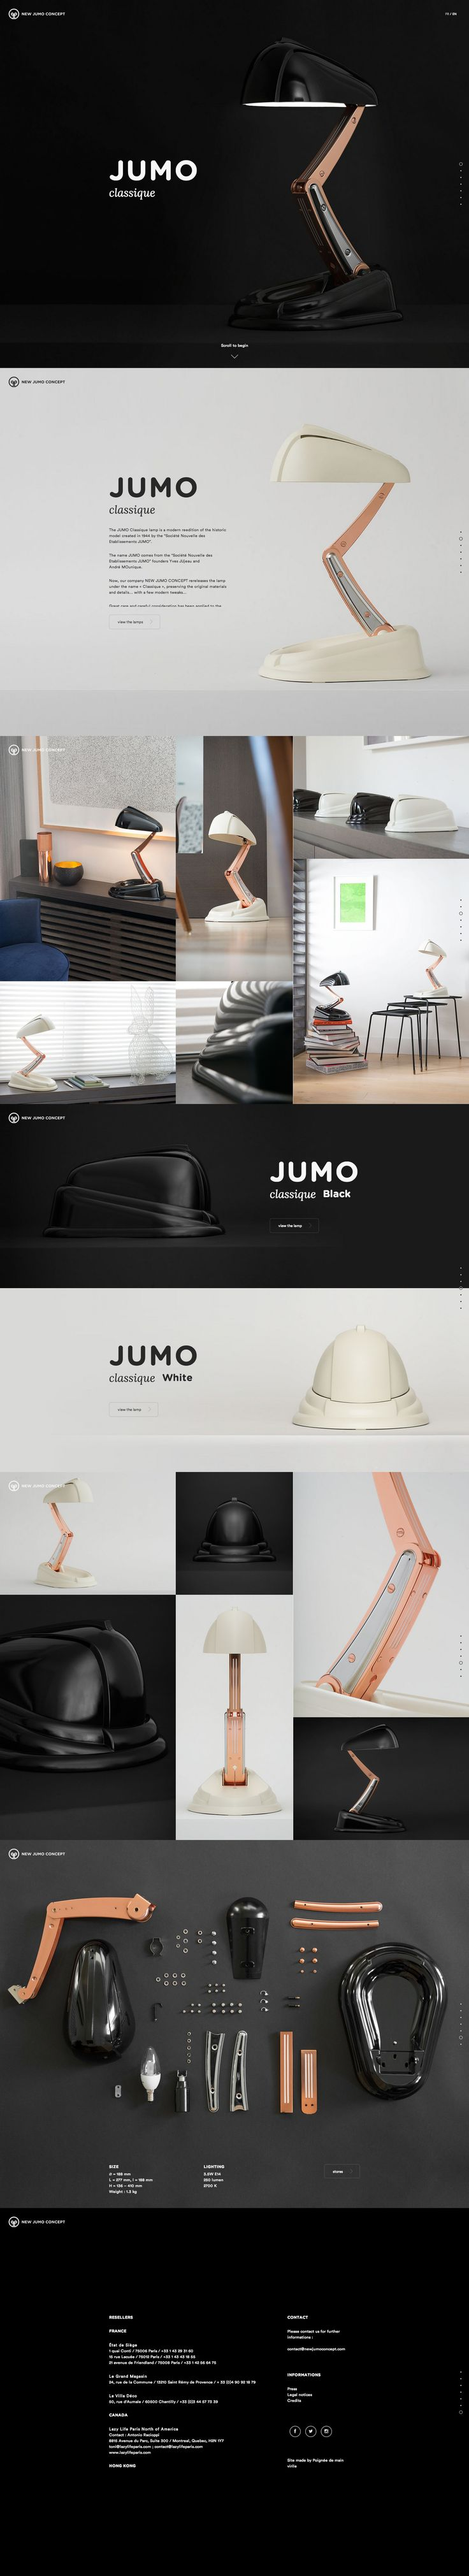 "JUMO Classique lamp - a modern reedition of the historic model created in 1944 by the ""Société Nouvelle des Etablissements JUMO""."